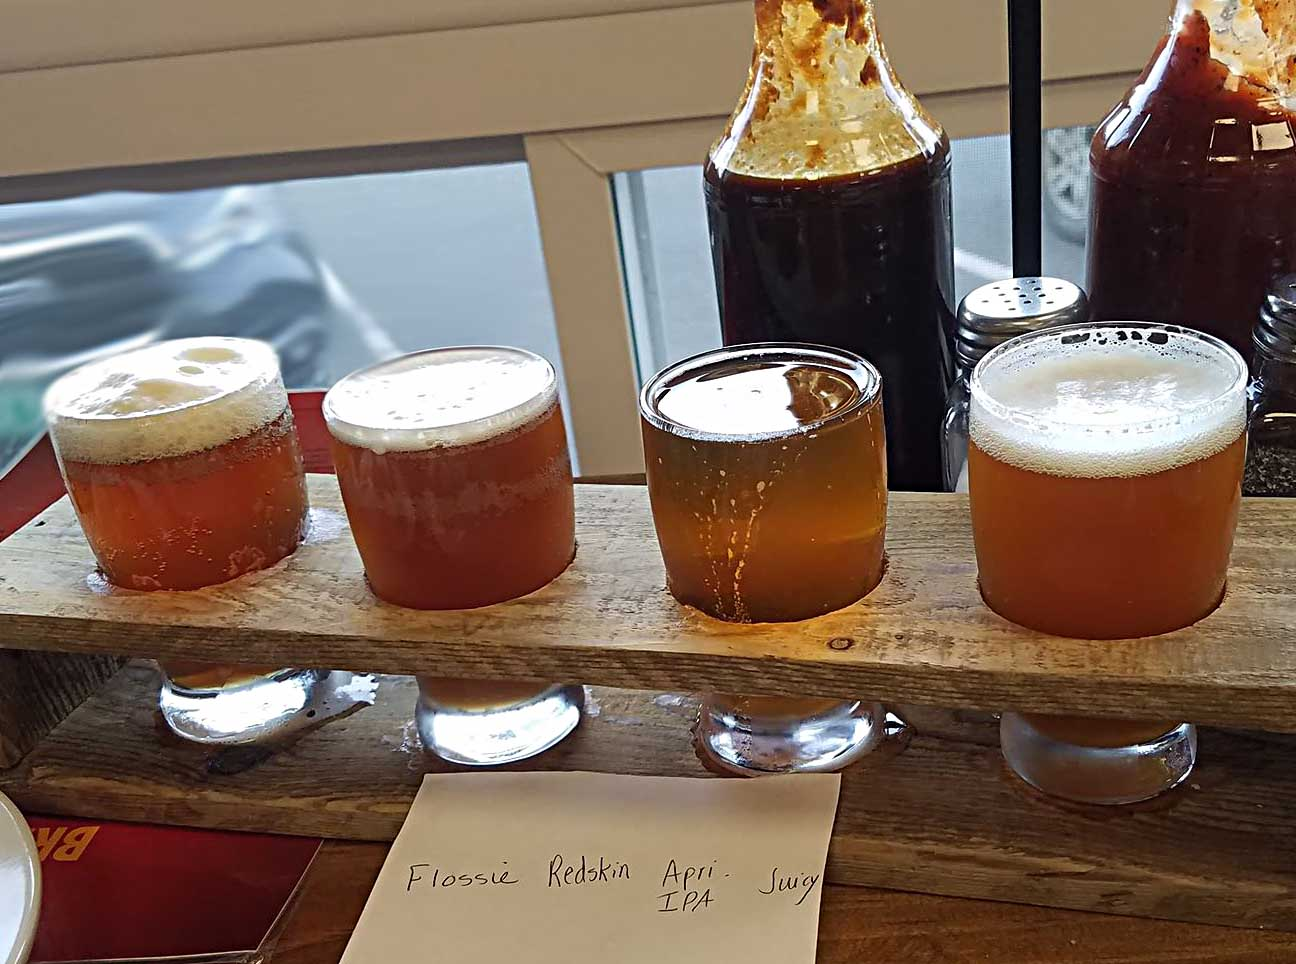 Flight of Micro Brews from Goob's Brewery Derby Line Vt